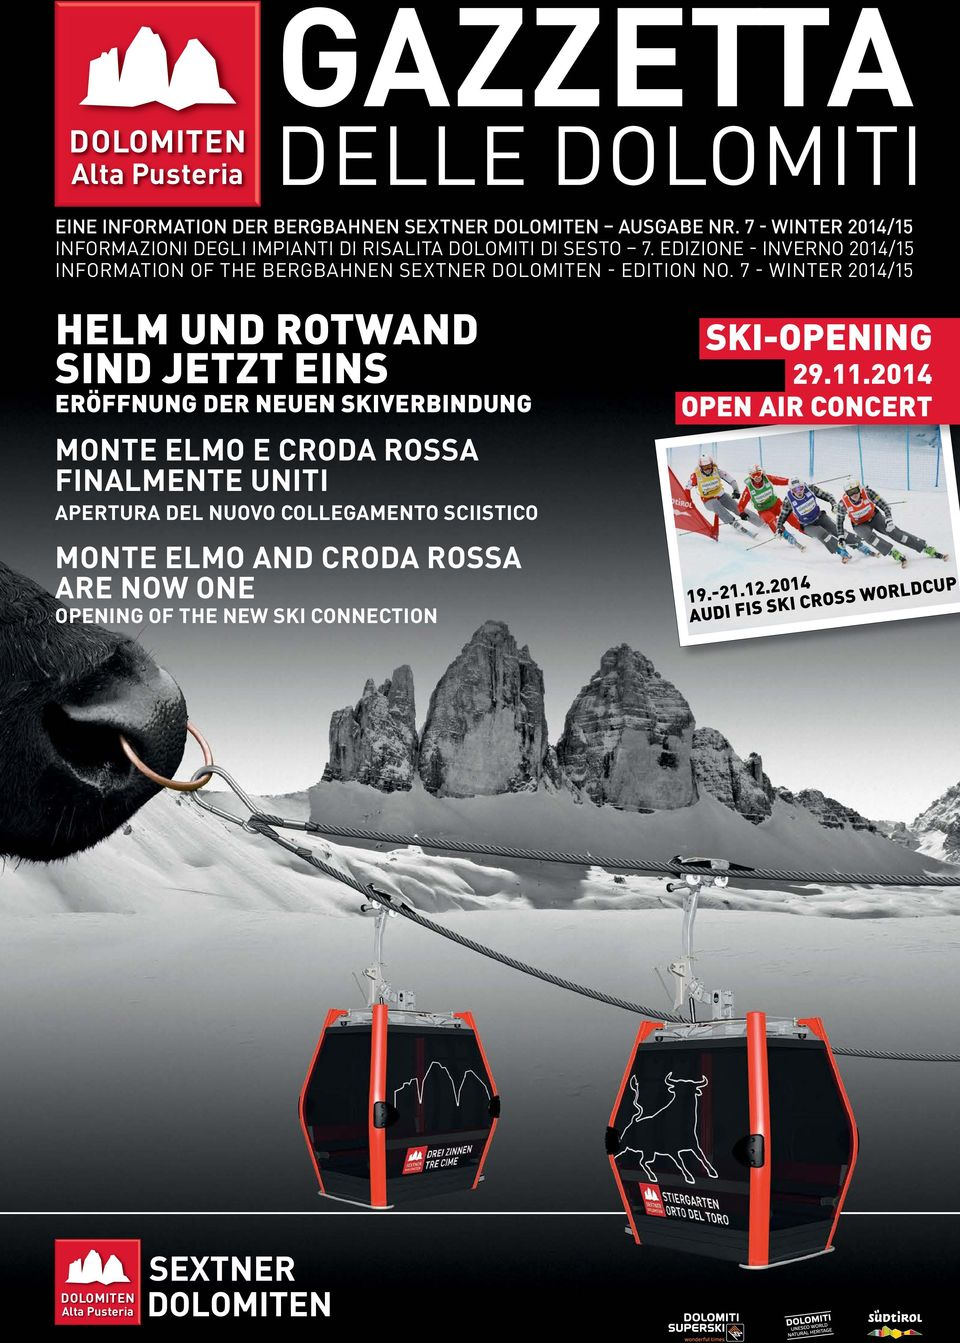 Edizione - Inverno 2014/15 Information of the Bergbahnen Sextner Dolomiten - Edition No.